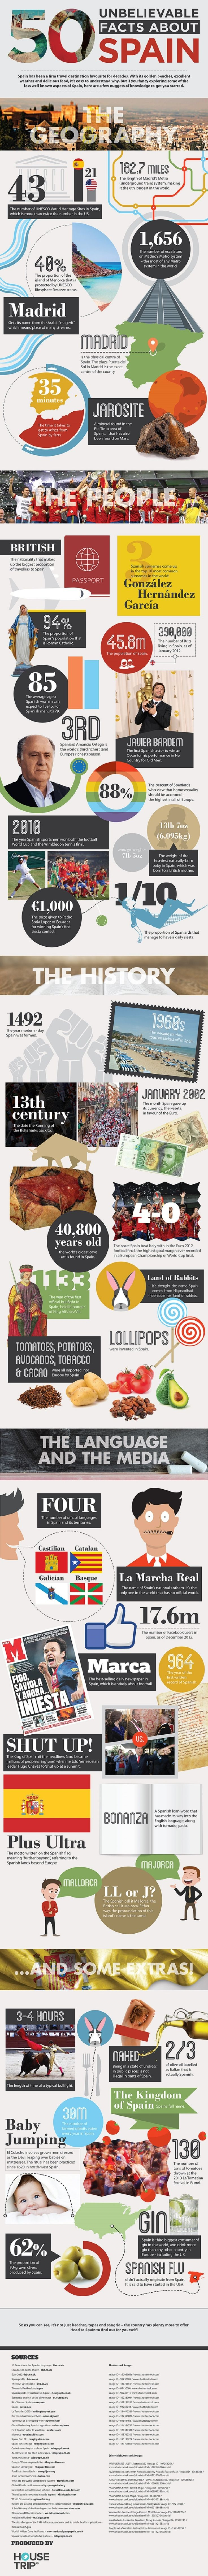 50 Facts About Spain Infographic